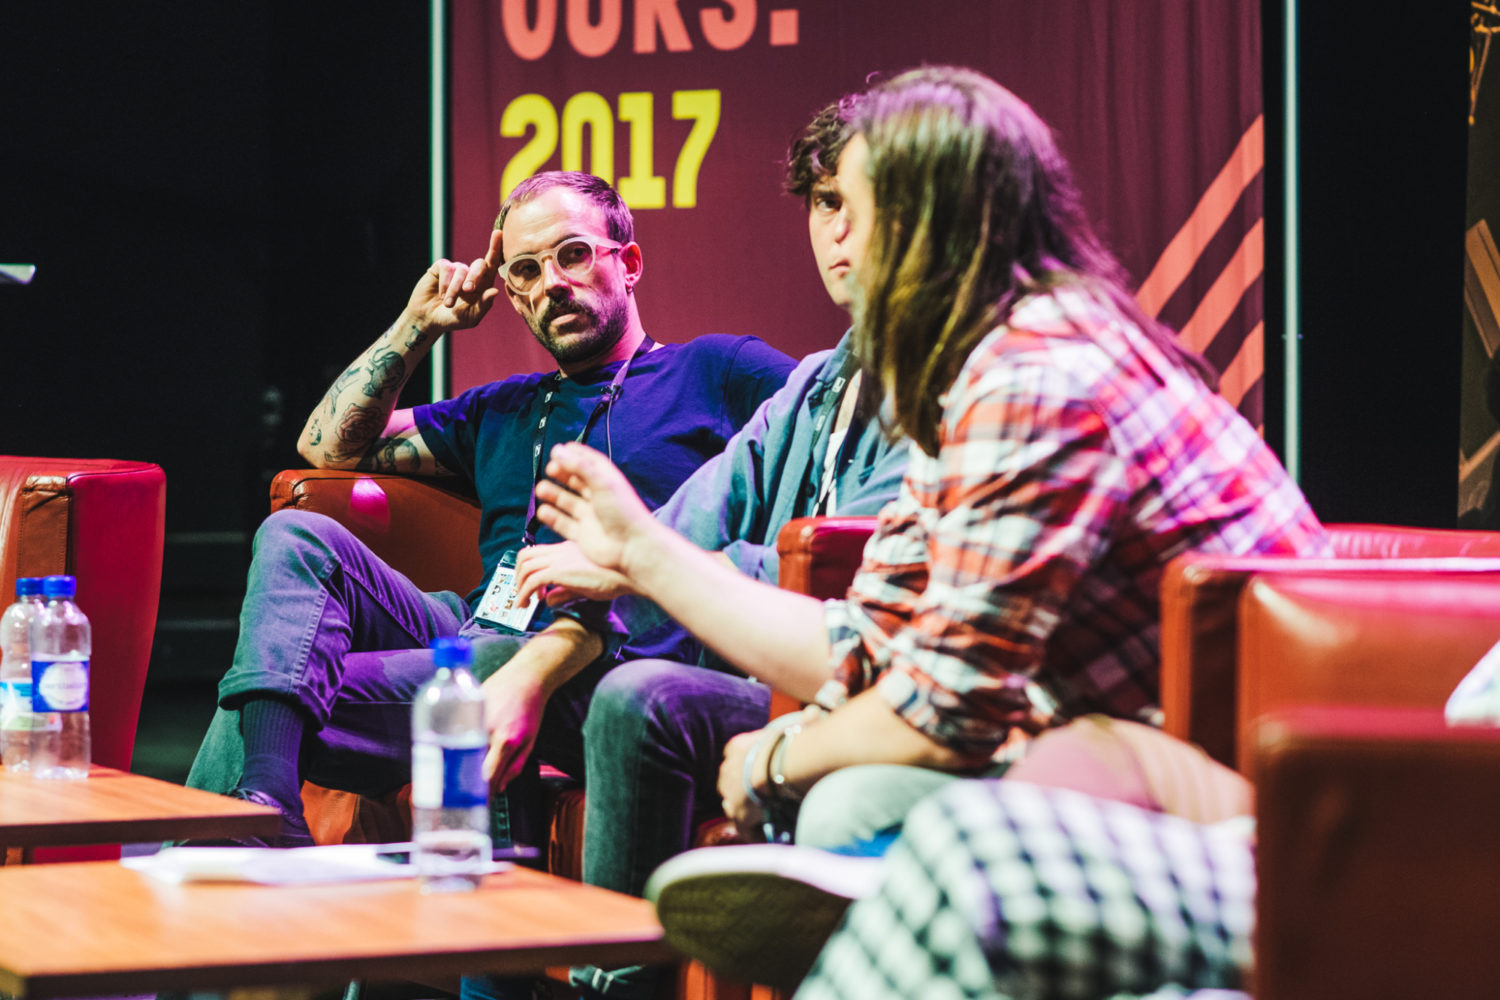 DIY are teaming up with 53 Degrees North for their youth-centric music conference